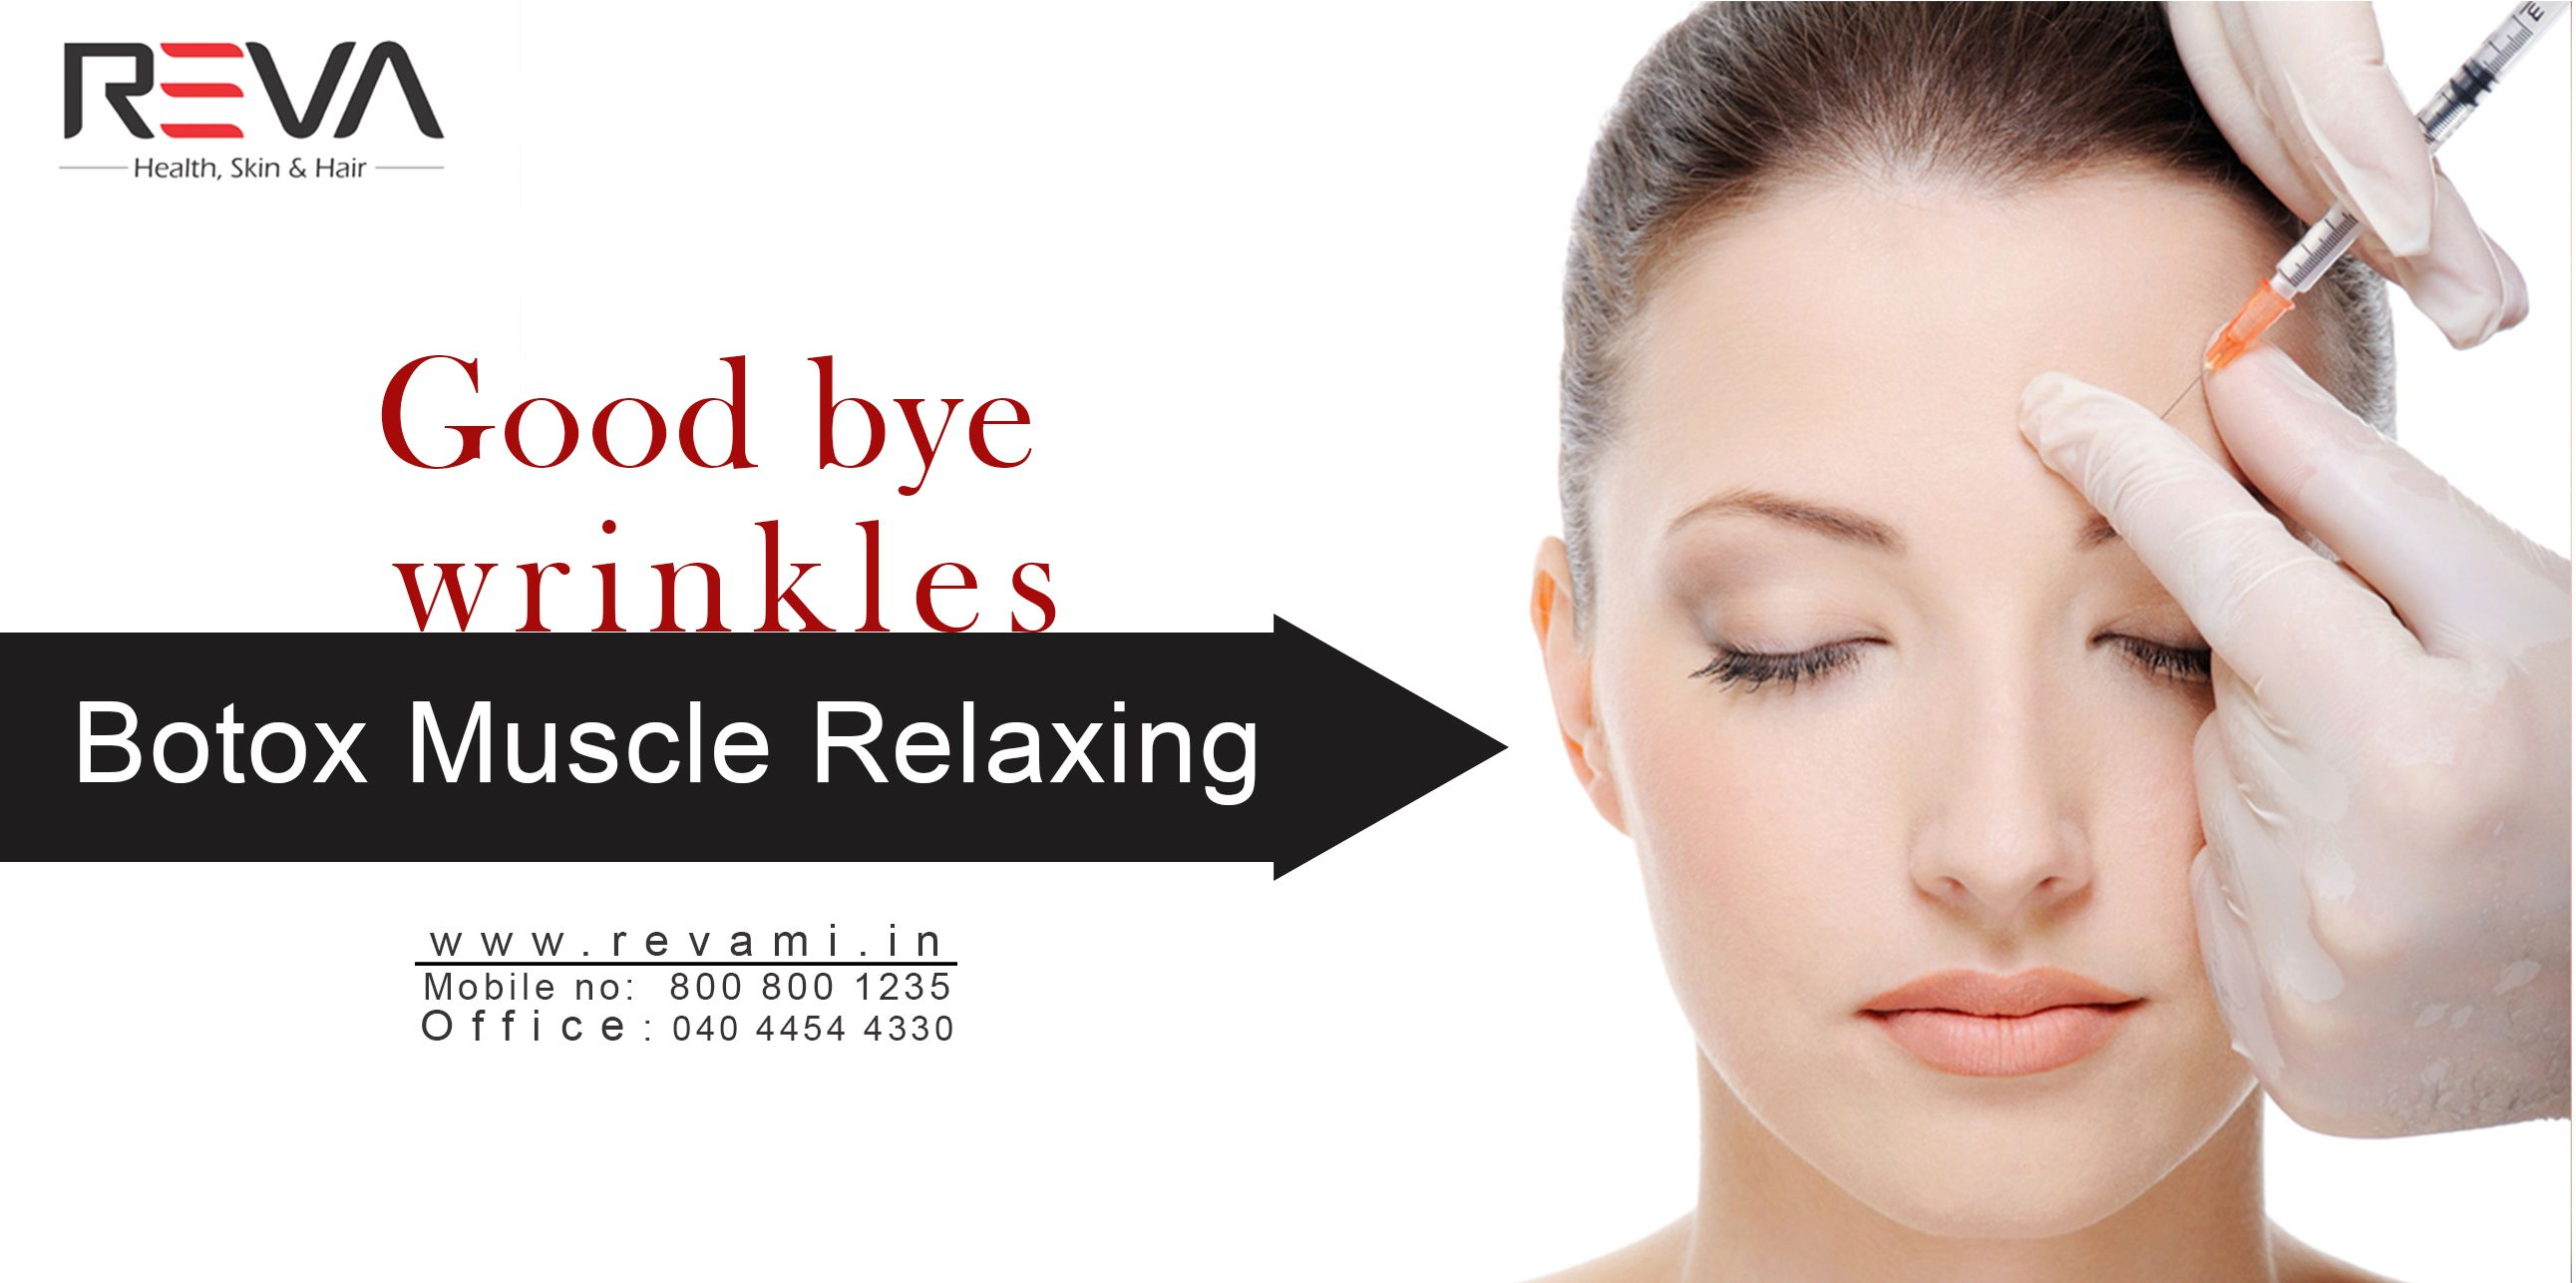 Good bye wrinkles Botox Muscle Relaxing We Have Safe